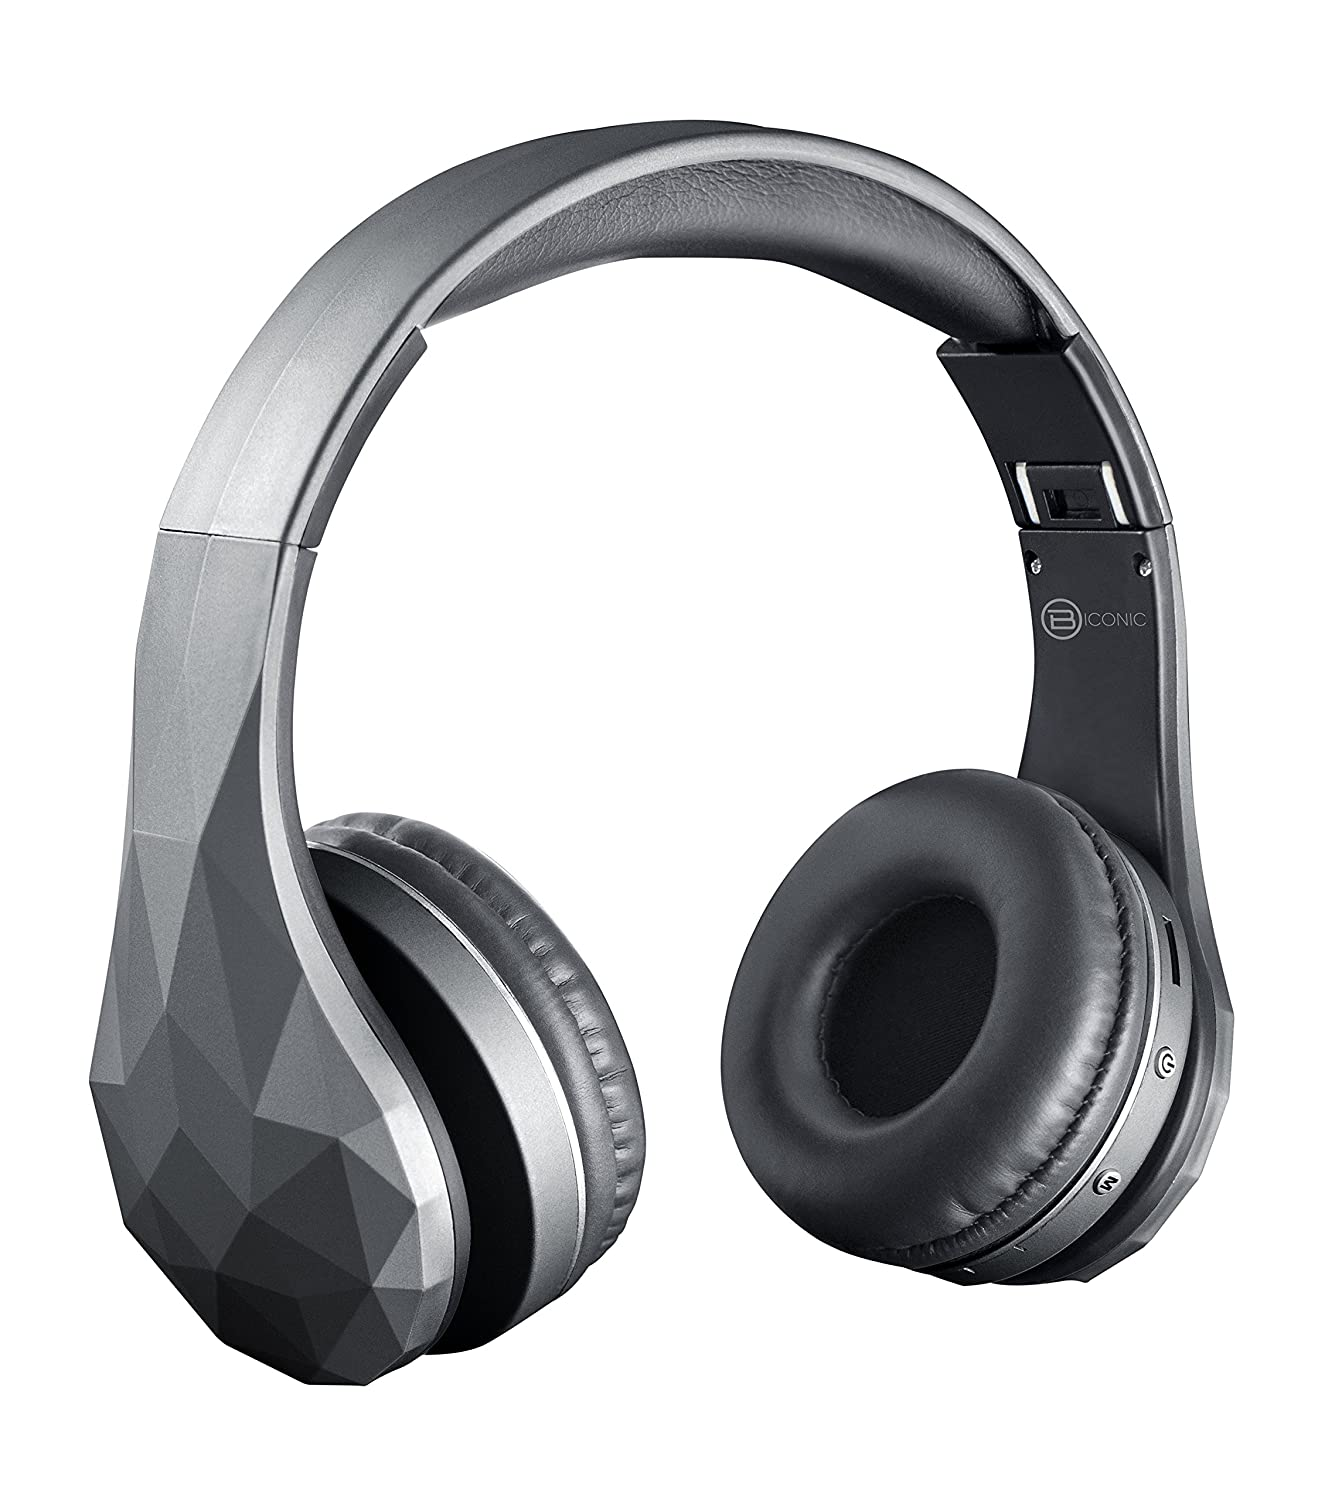 c2e2ddfed20 Amazon.com: Biconic Bluetooth Foldable Hands Free Wireless Control Stereo  Headphones Grey: Musical Instruments